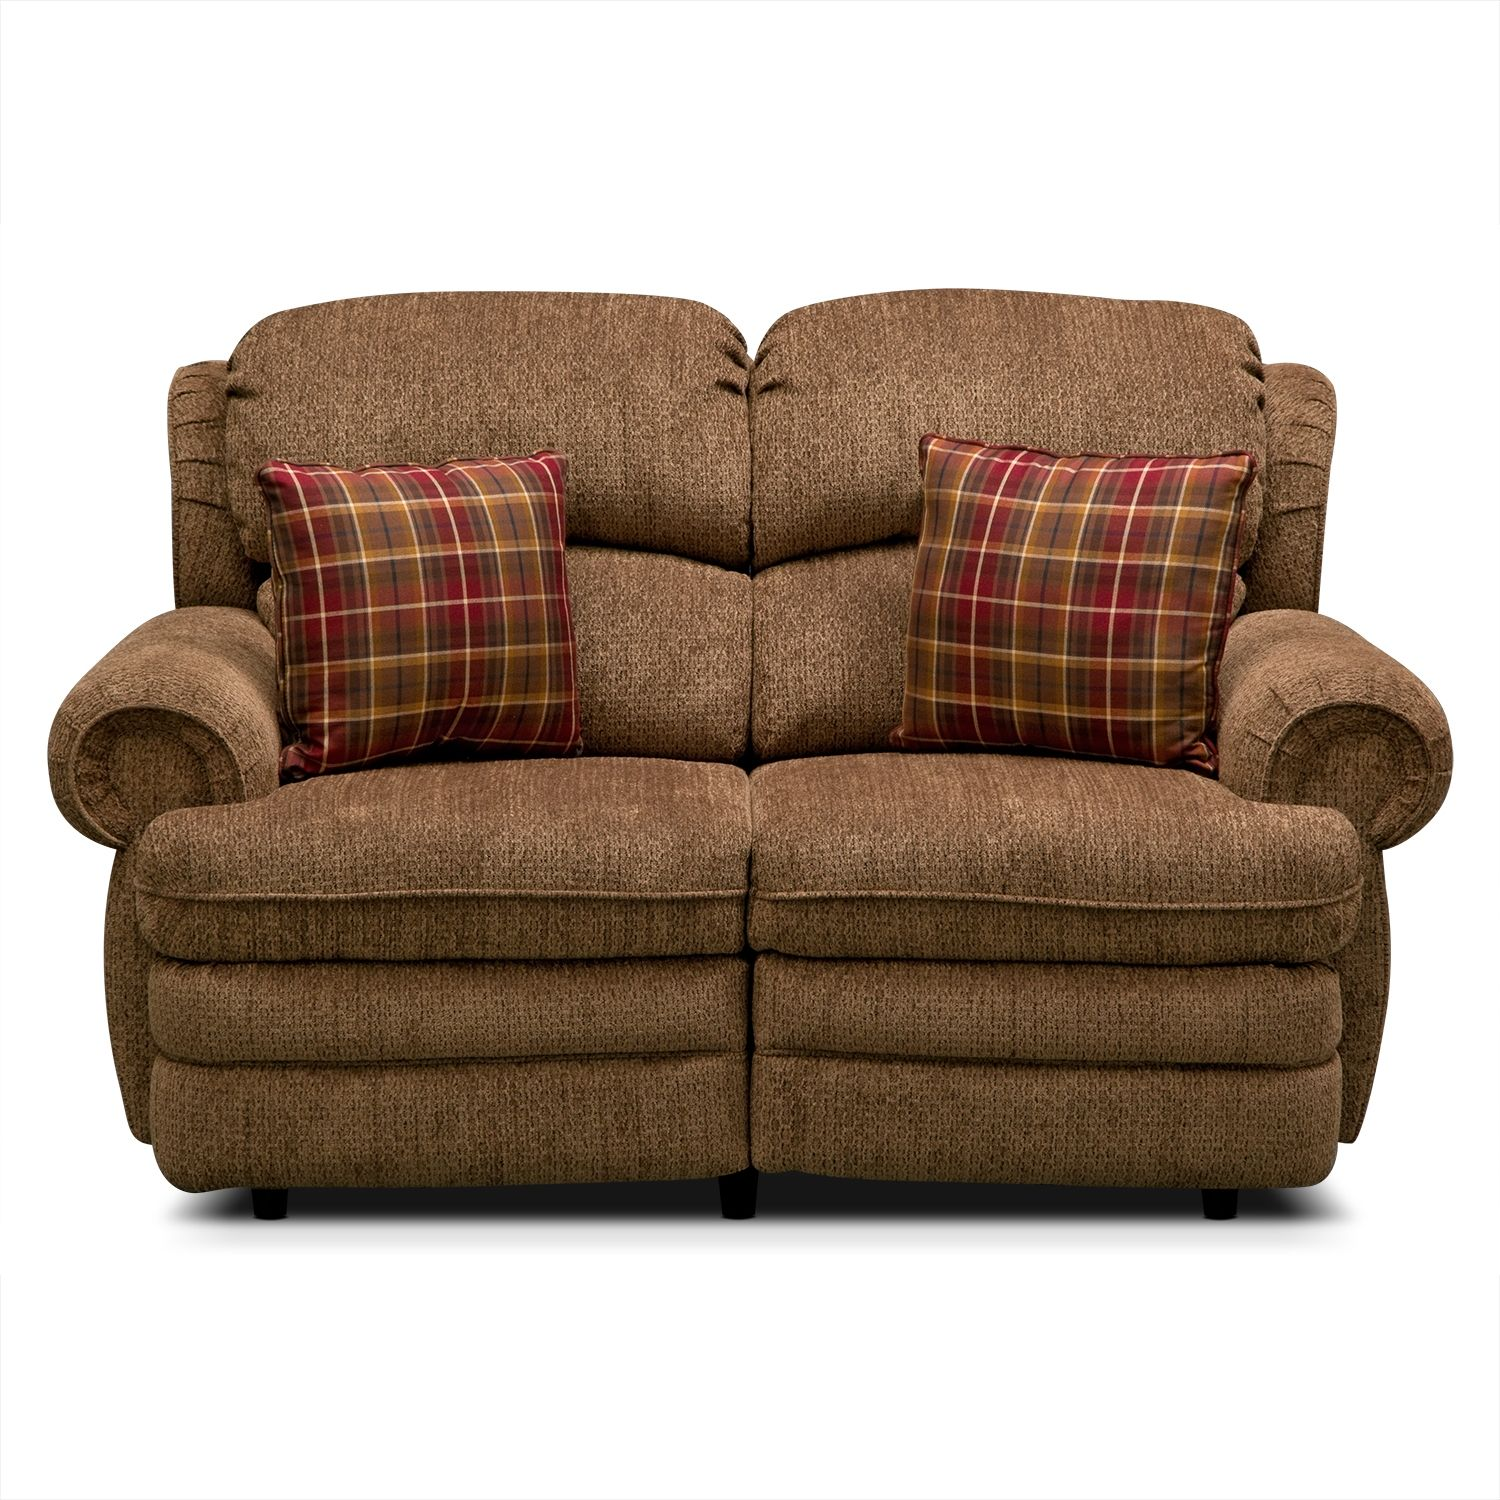 recliner and recliners loveseat your room value full for size express living furnishing of the sofa choosing tips electric city furniture leather